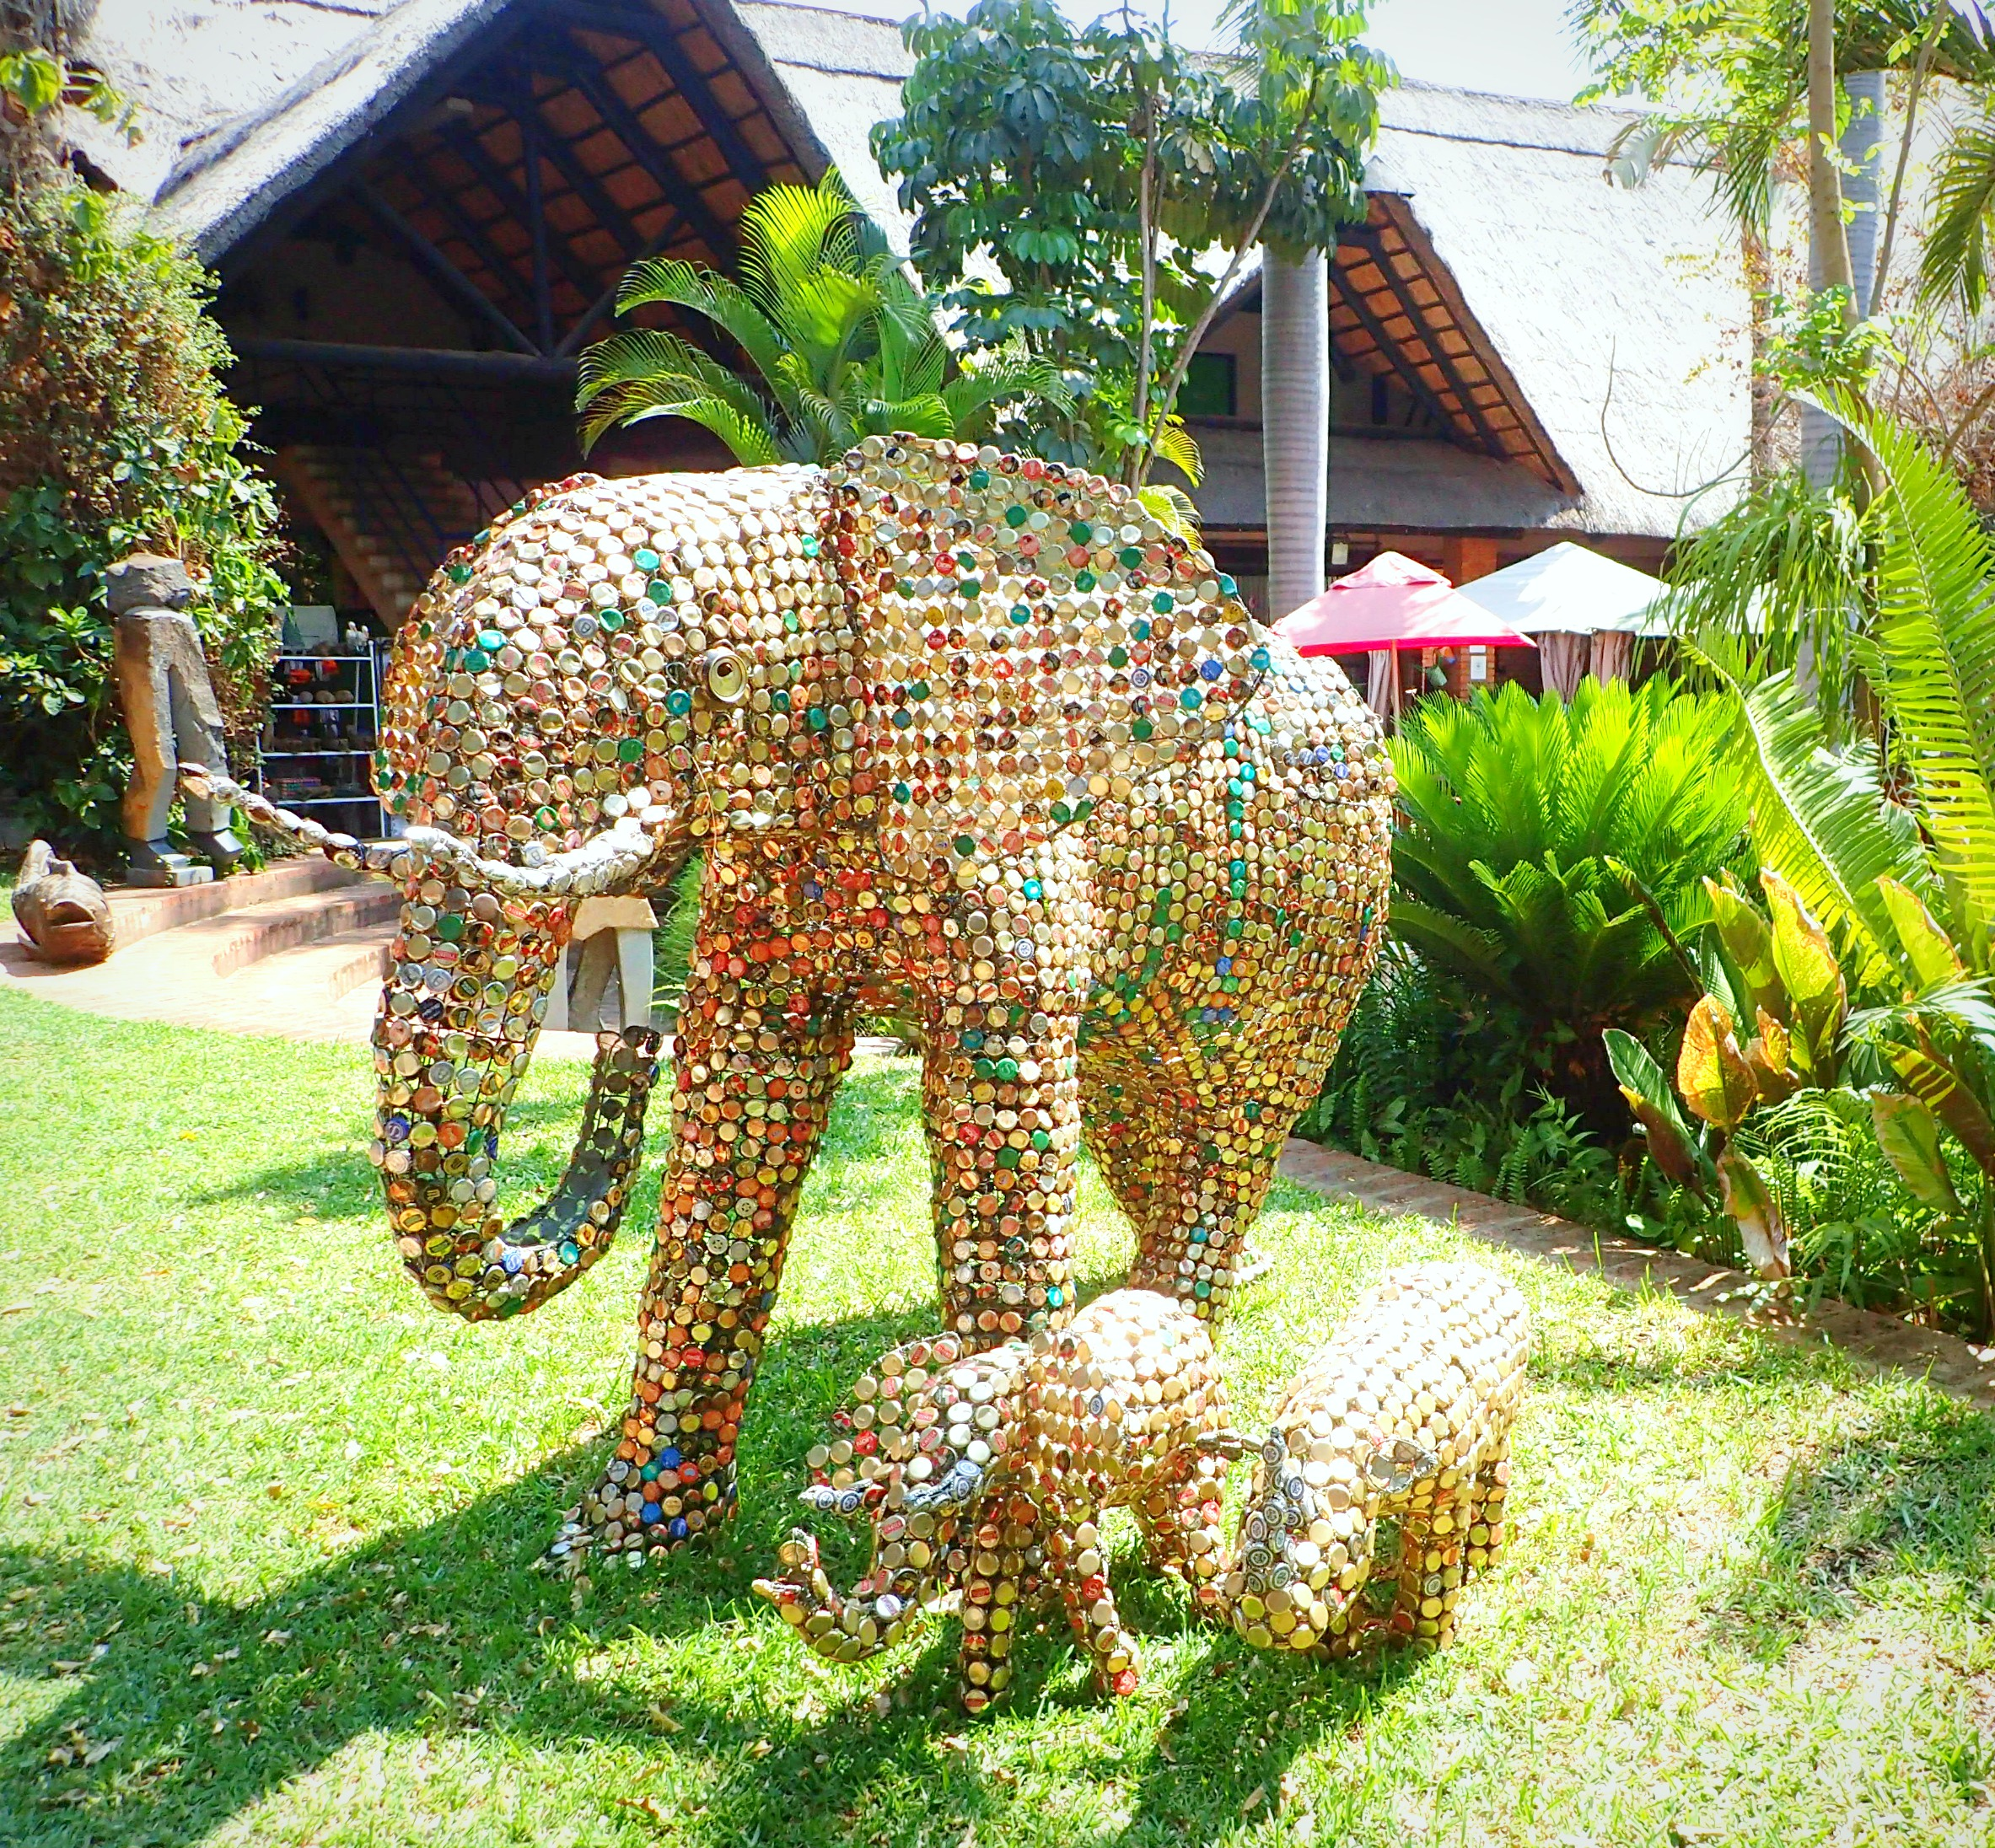 The Africa Cafe and Elephant's Walk-Victoria Falls for Introverts